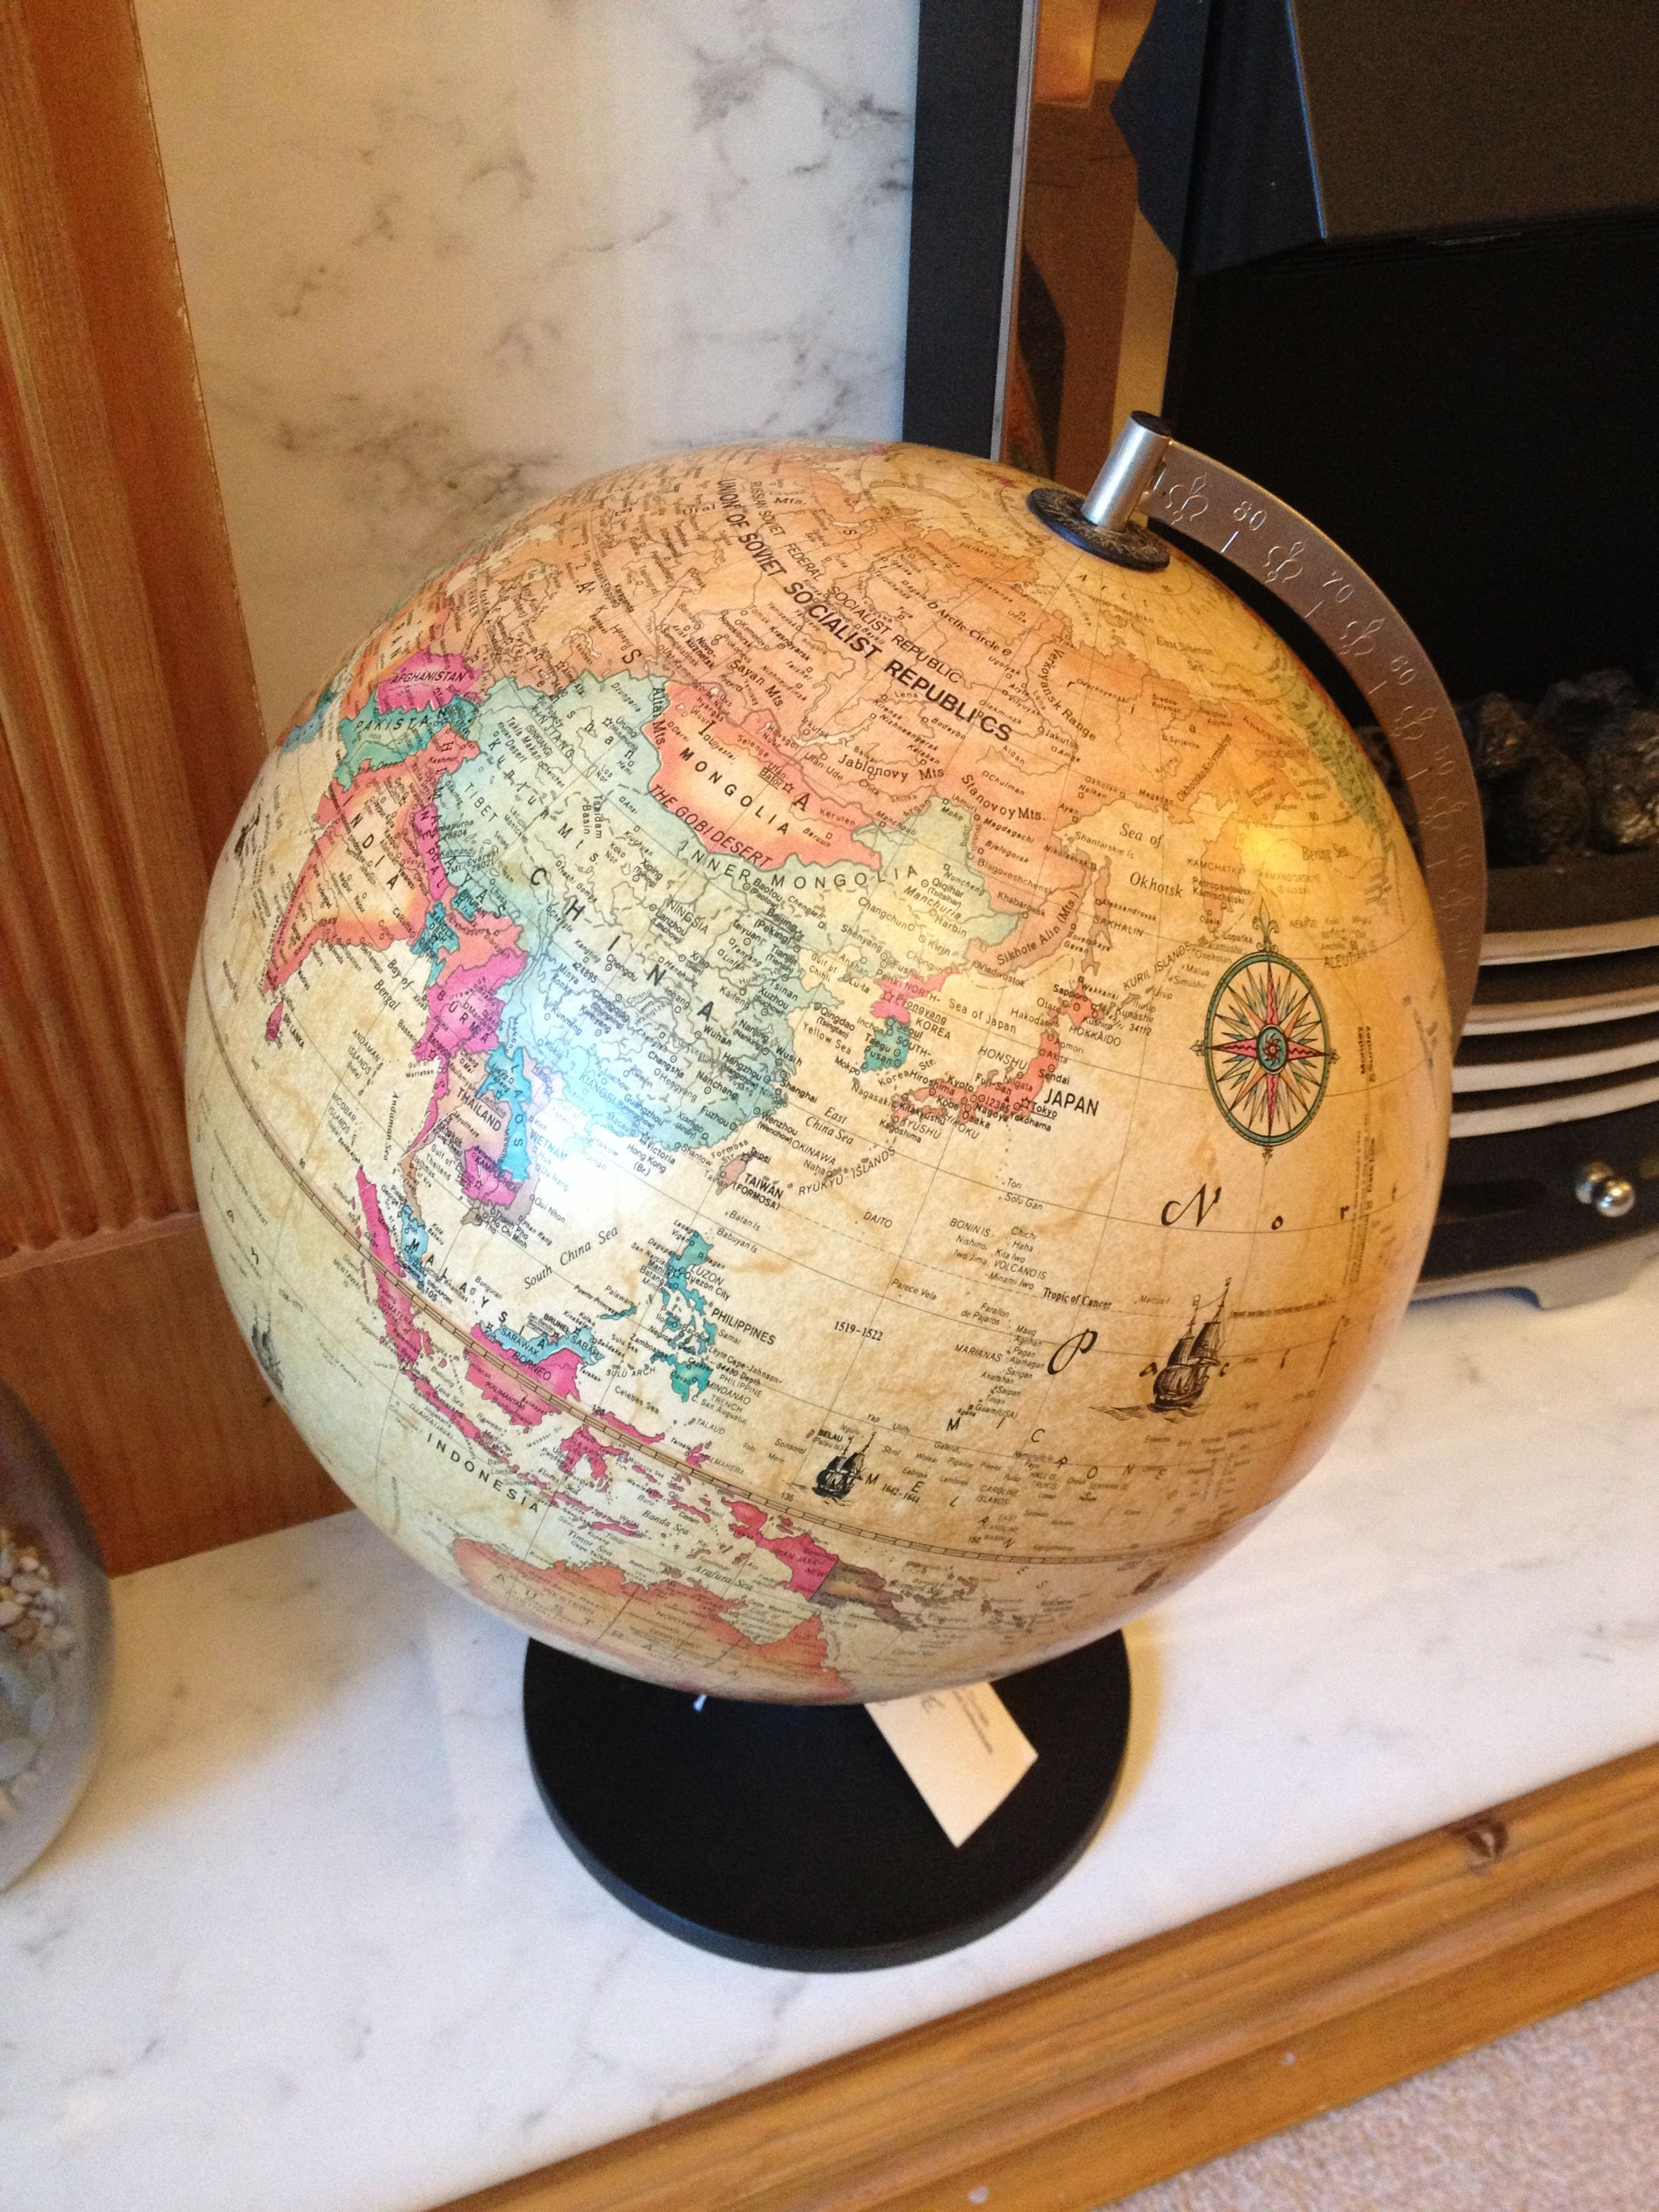 My new globe, bought from an antiques fair.